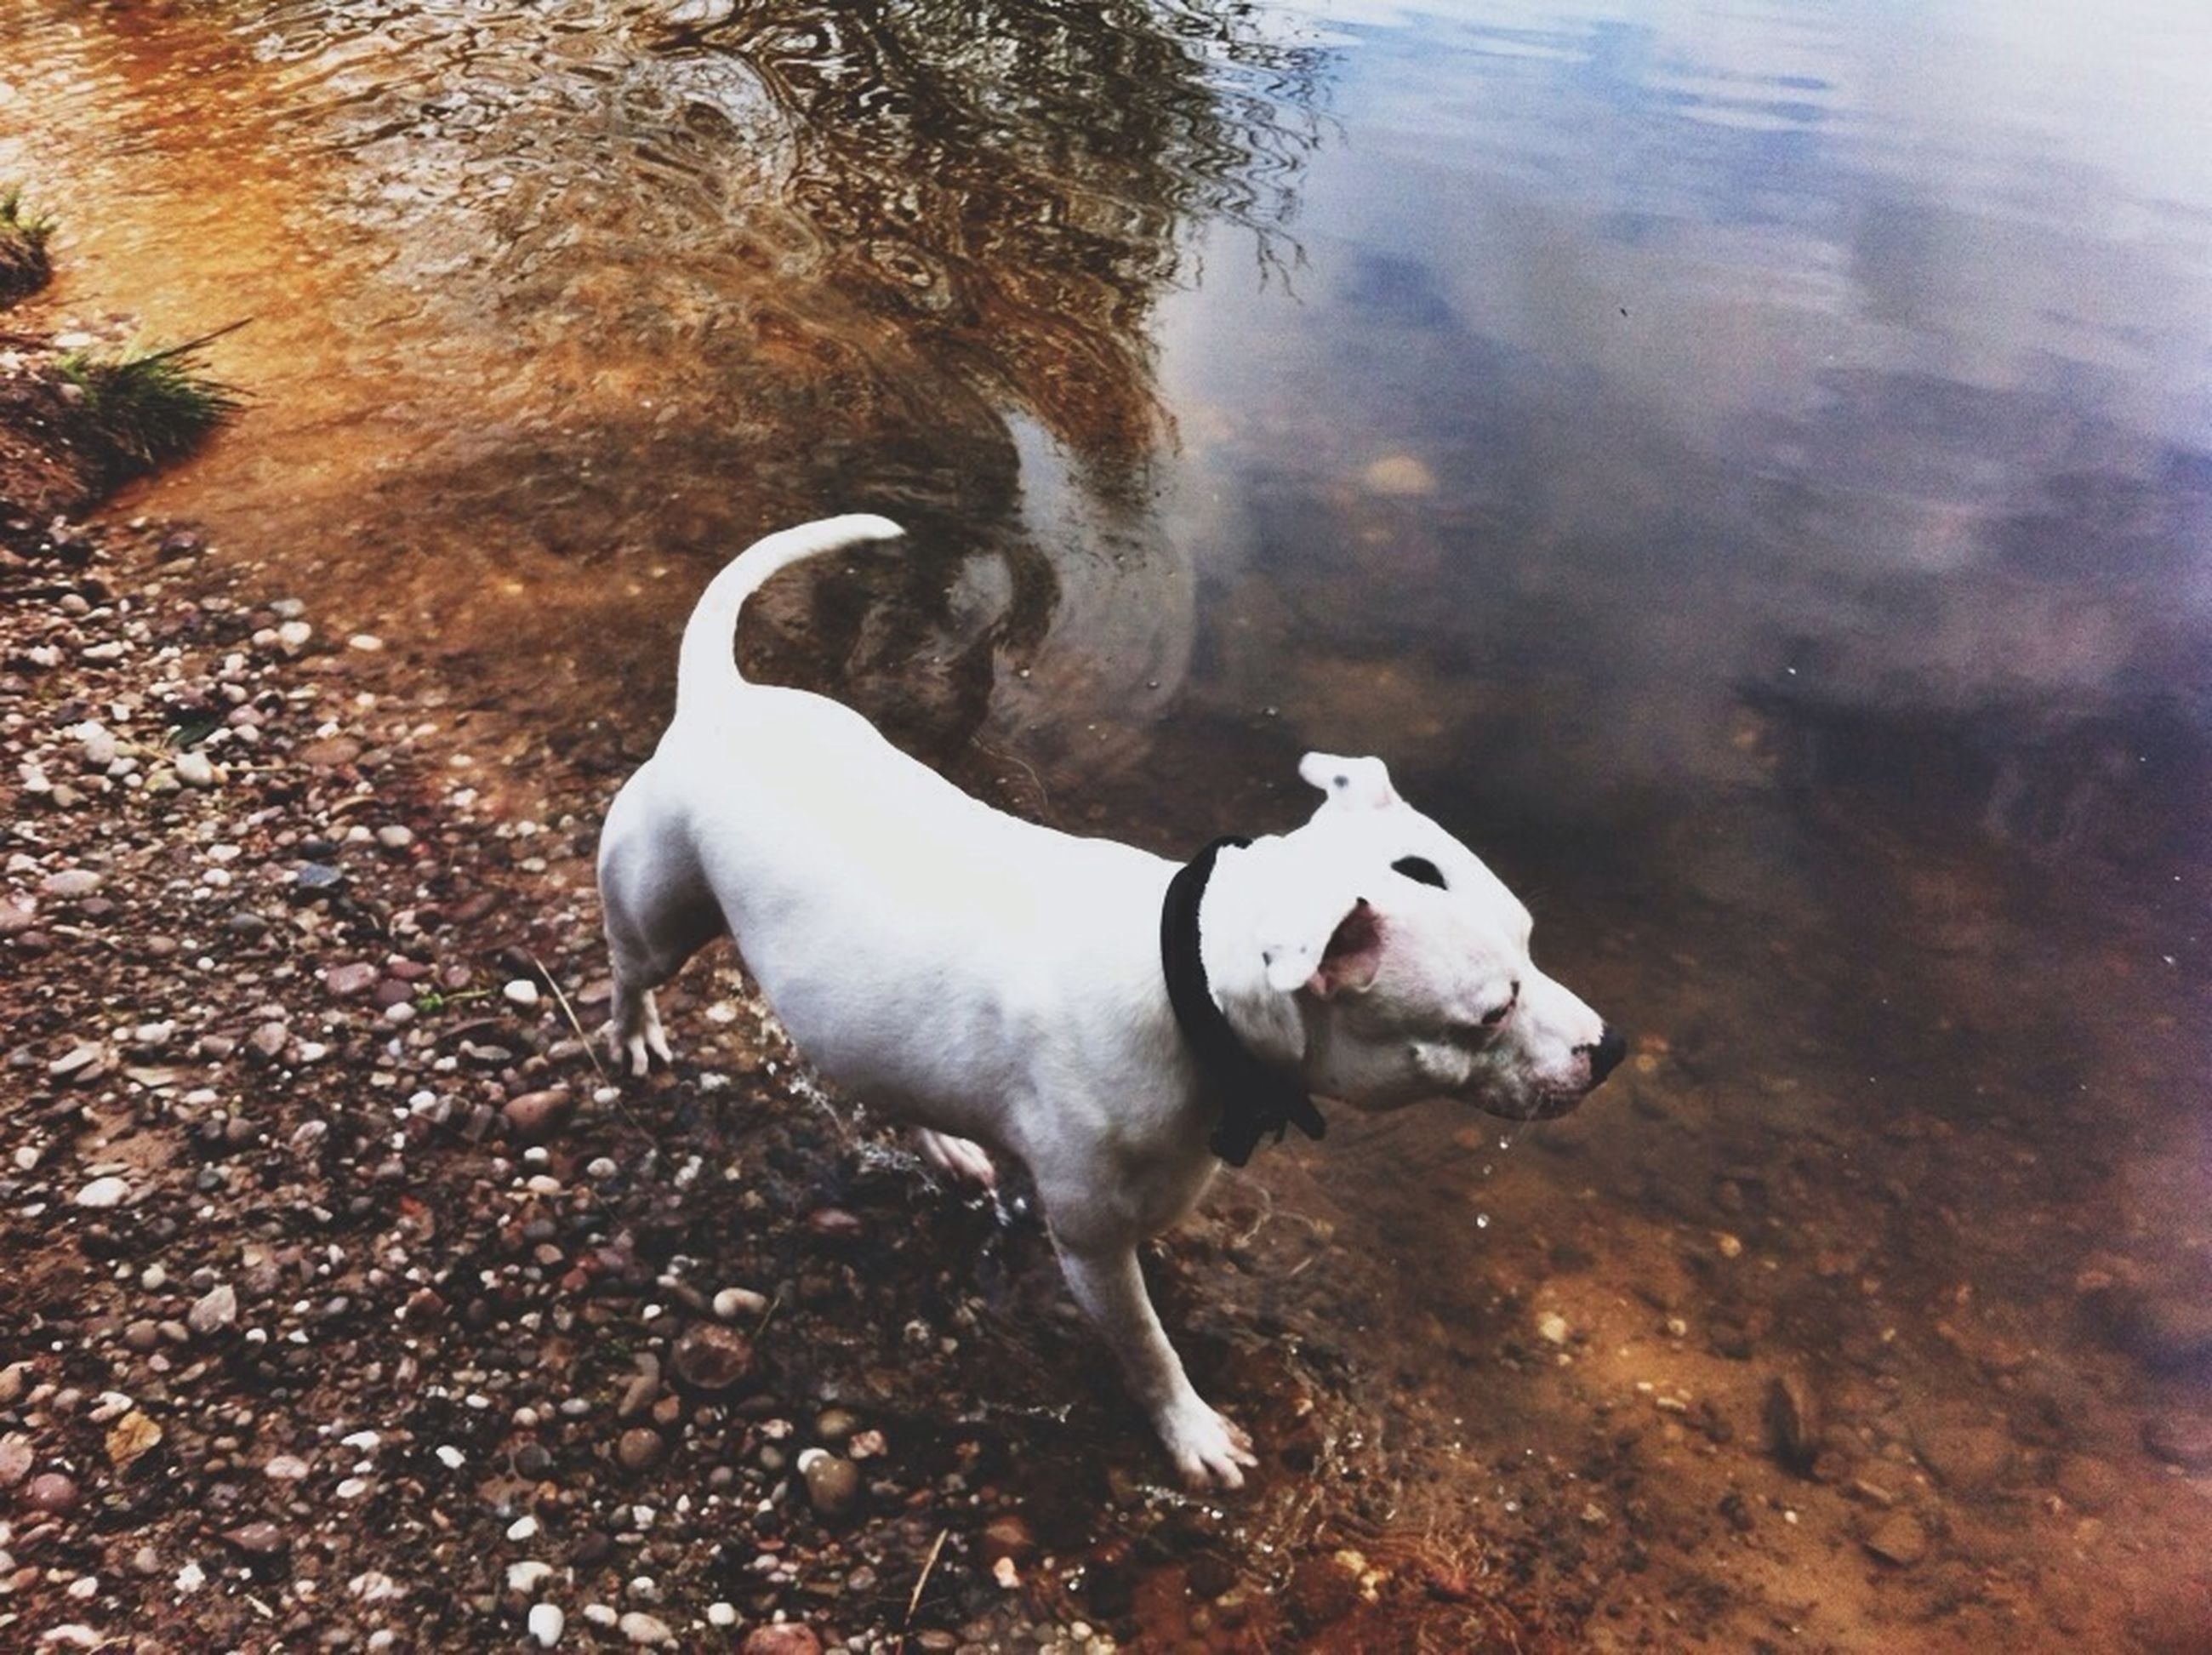 animal themes, domestic animals, mammal, one animal, dog, water, standing, pets, high angle view, nature, full length, walking, outdoors, two animals, day, no people, zoology, lake, field, rock - object